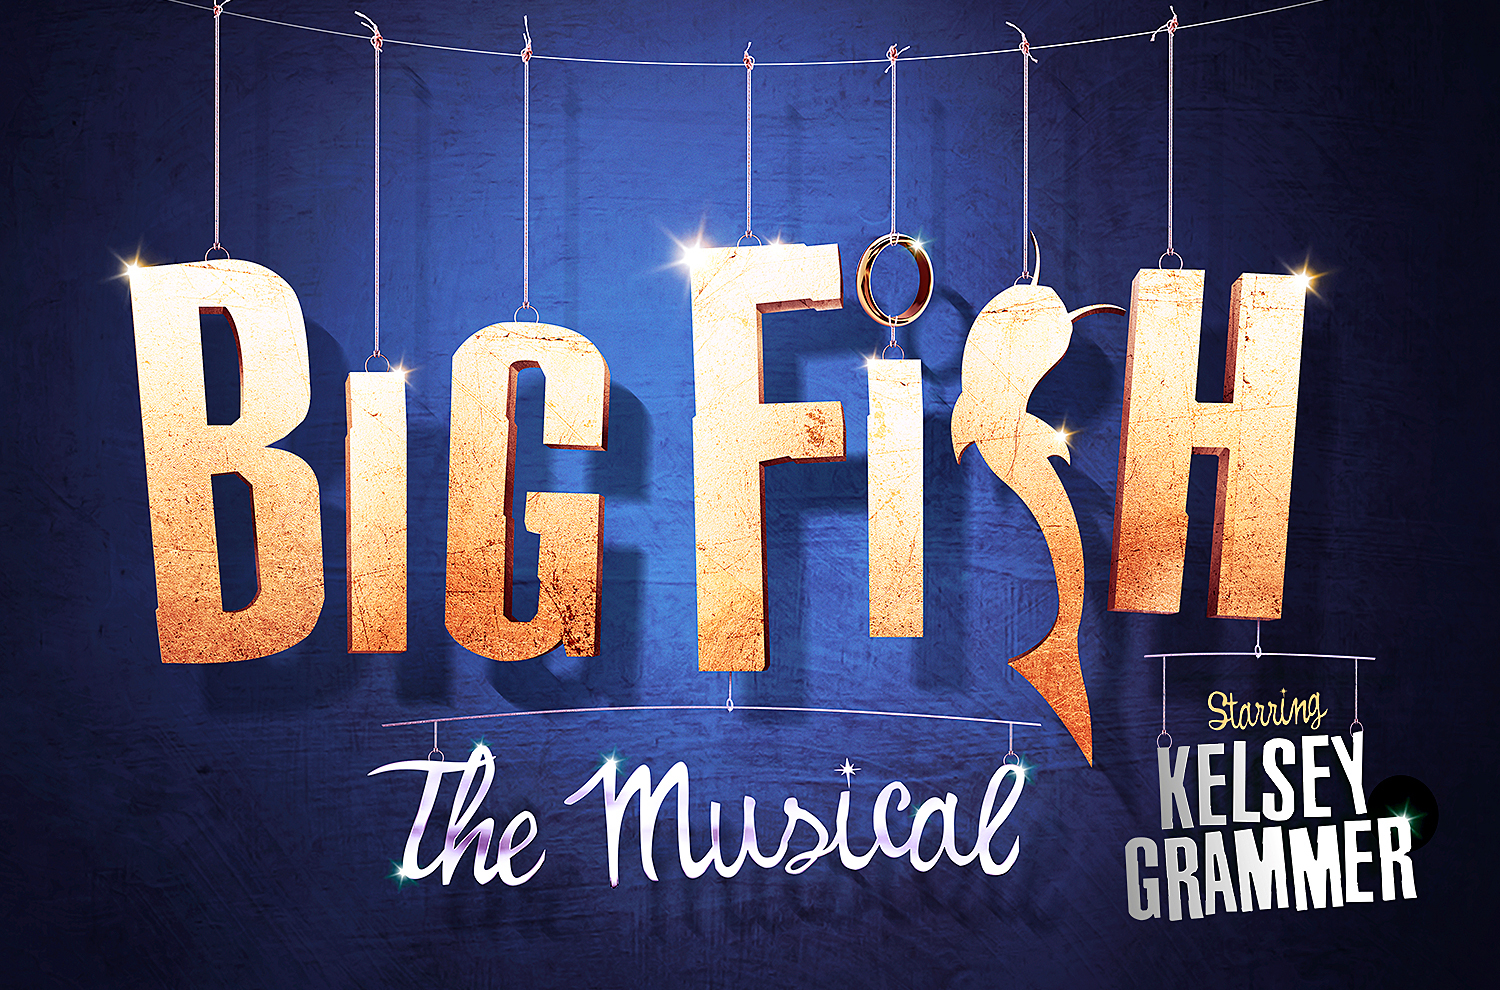 'Big Fish - The Musical' at The Other Palace